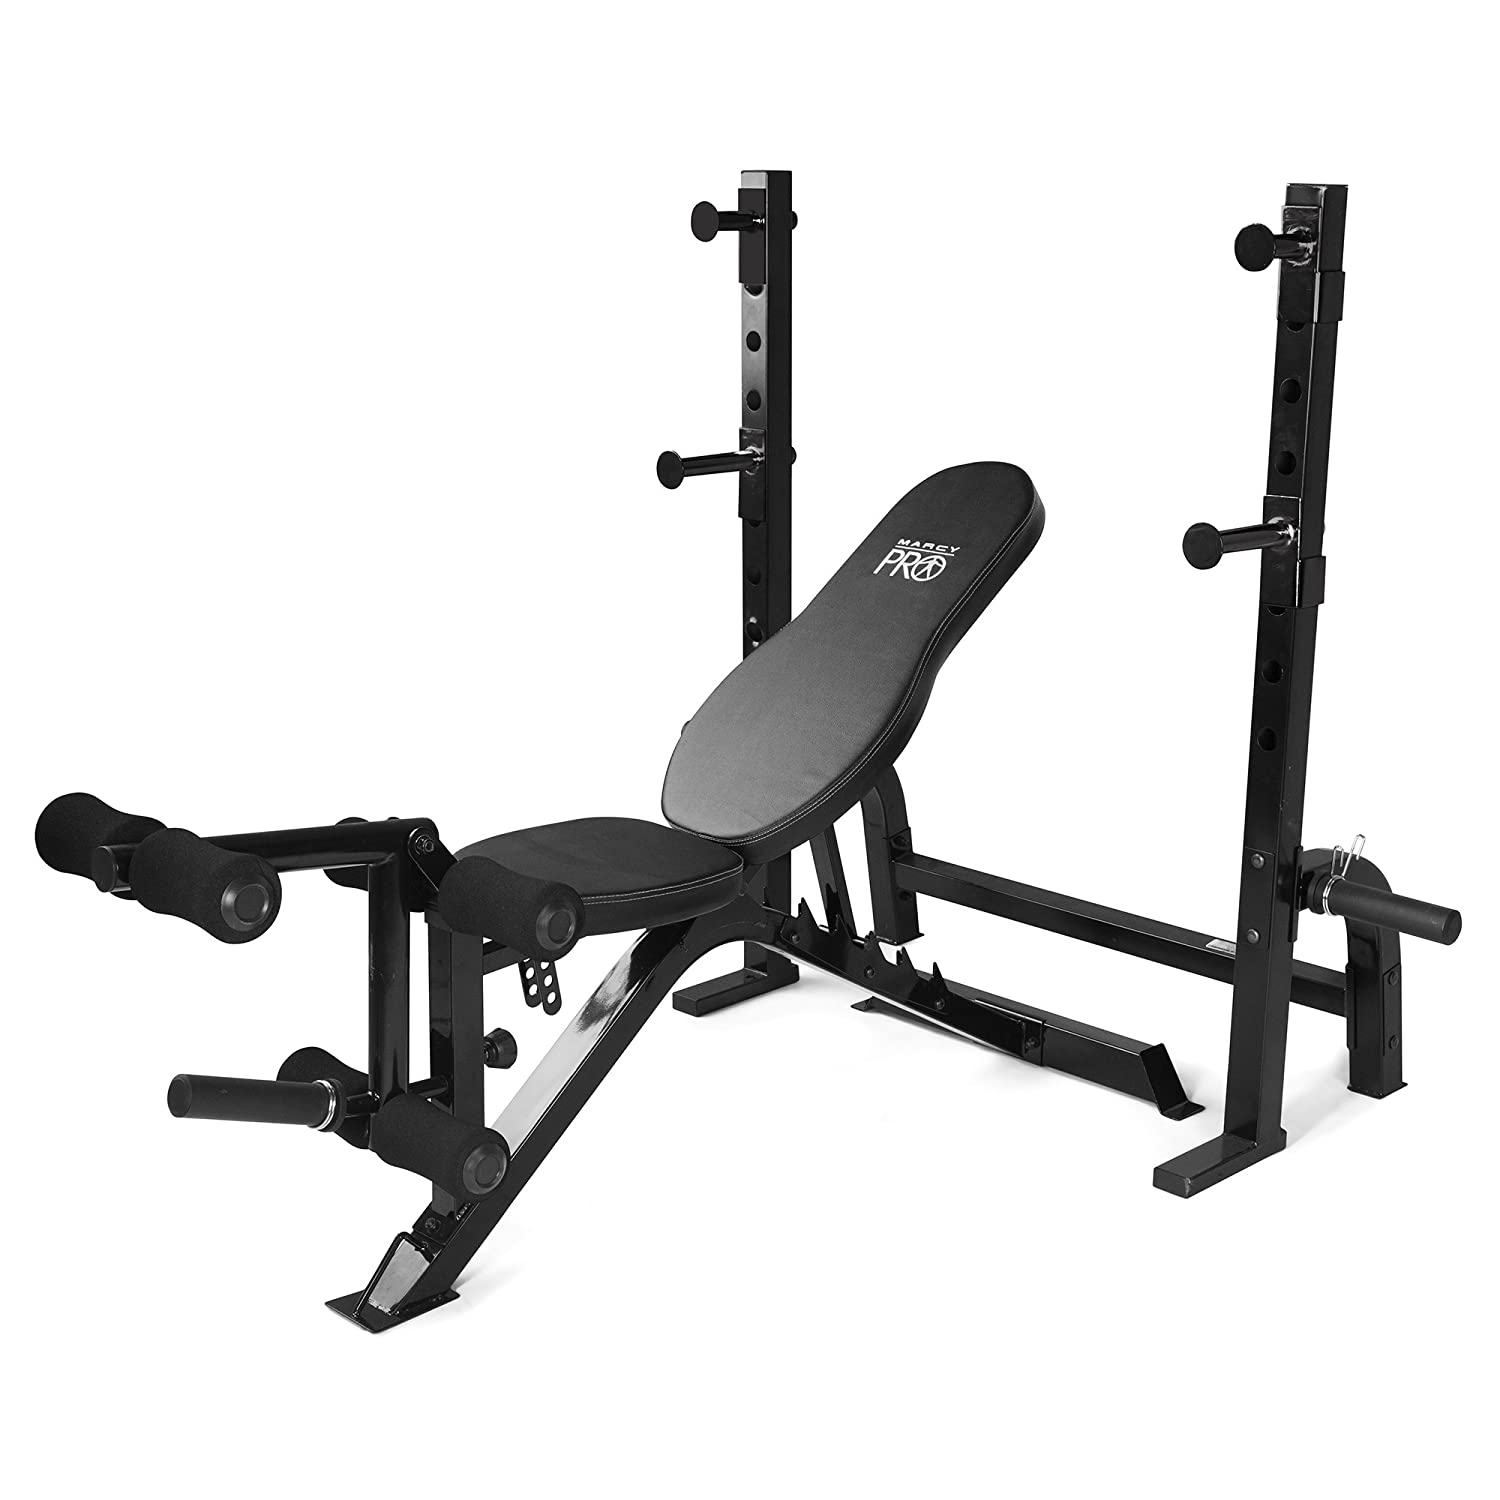 Amazon.com : Marcy Adjustable Olympic Exercise Bench with Squat Rack and  Leg Developer PM-70210 : Sports & Outdoors